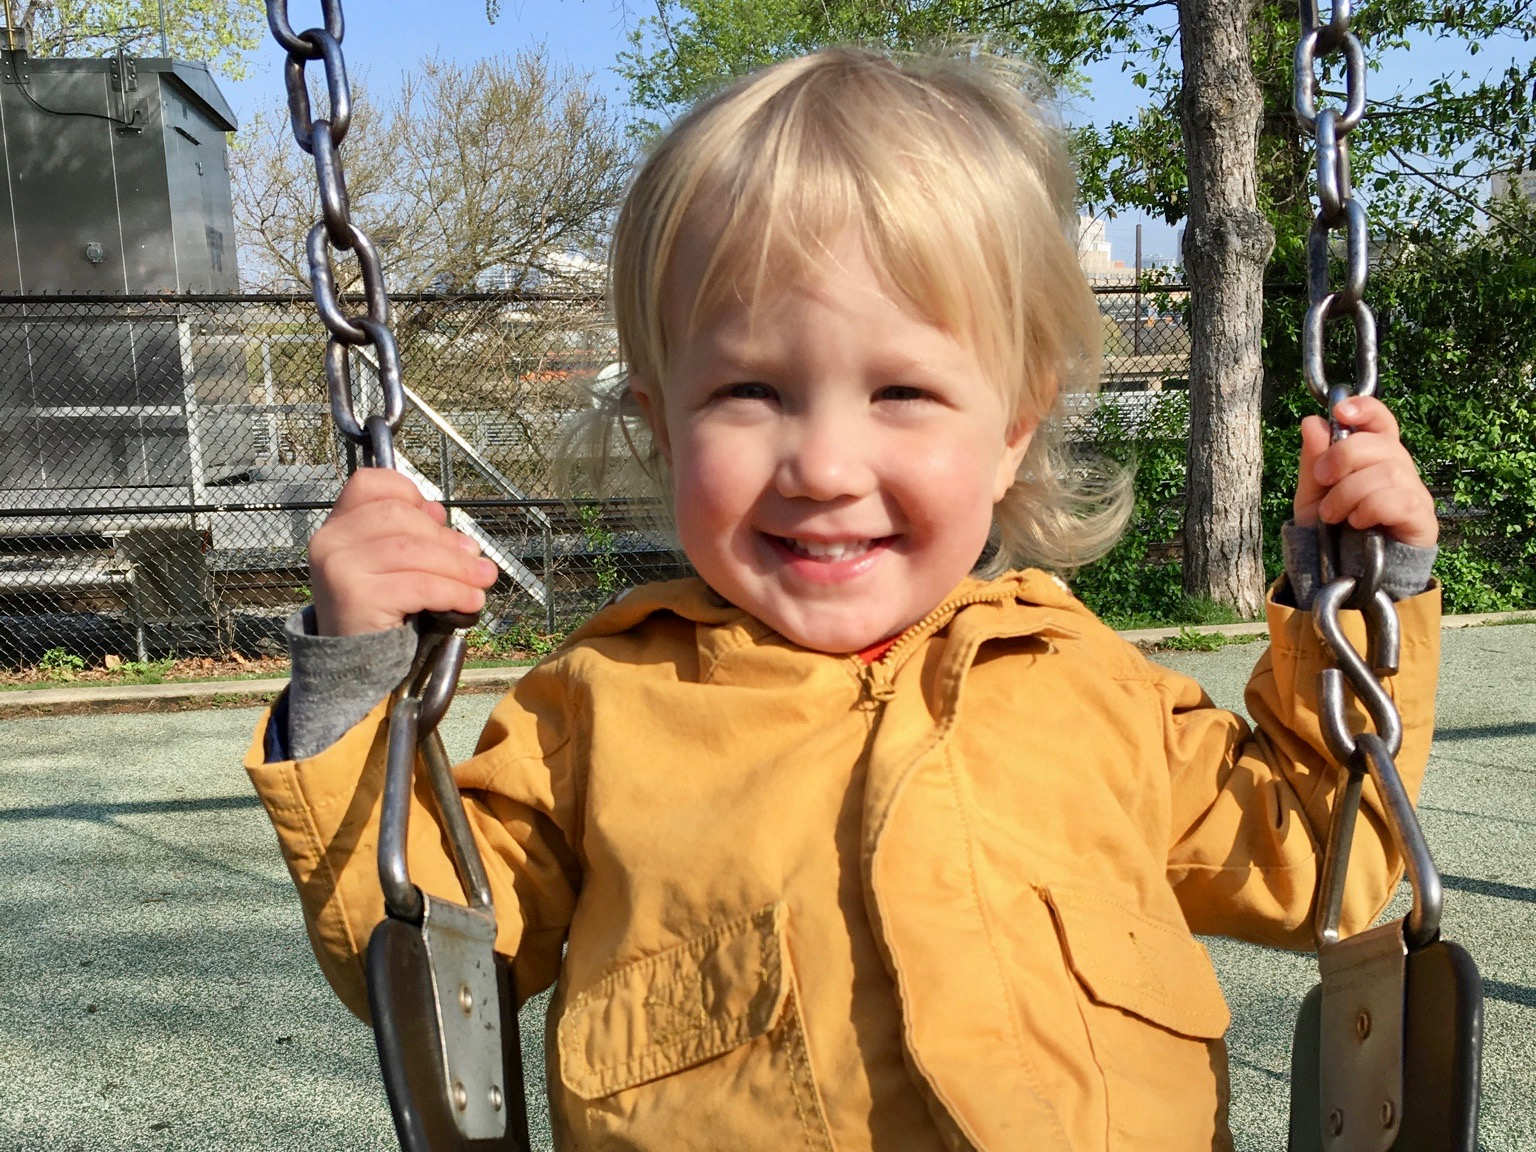 Toot Toot:  Fitz hits the swings in Schuylkill River Park, where kiddos can tackle the playground, explore gardens, and watch passing trains that often honk for their eager audience.